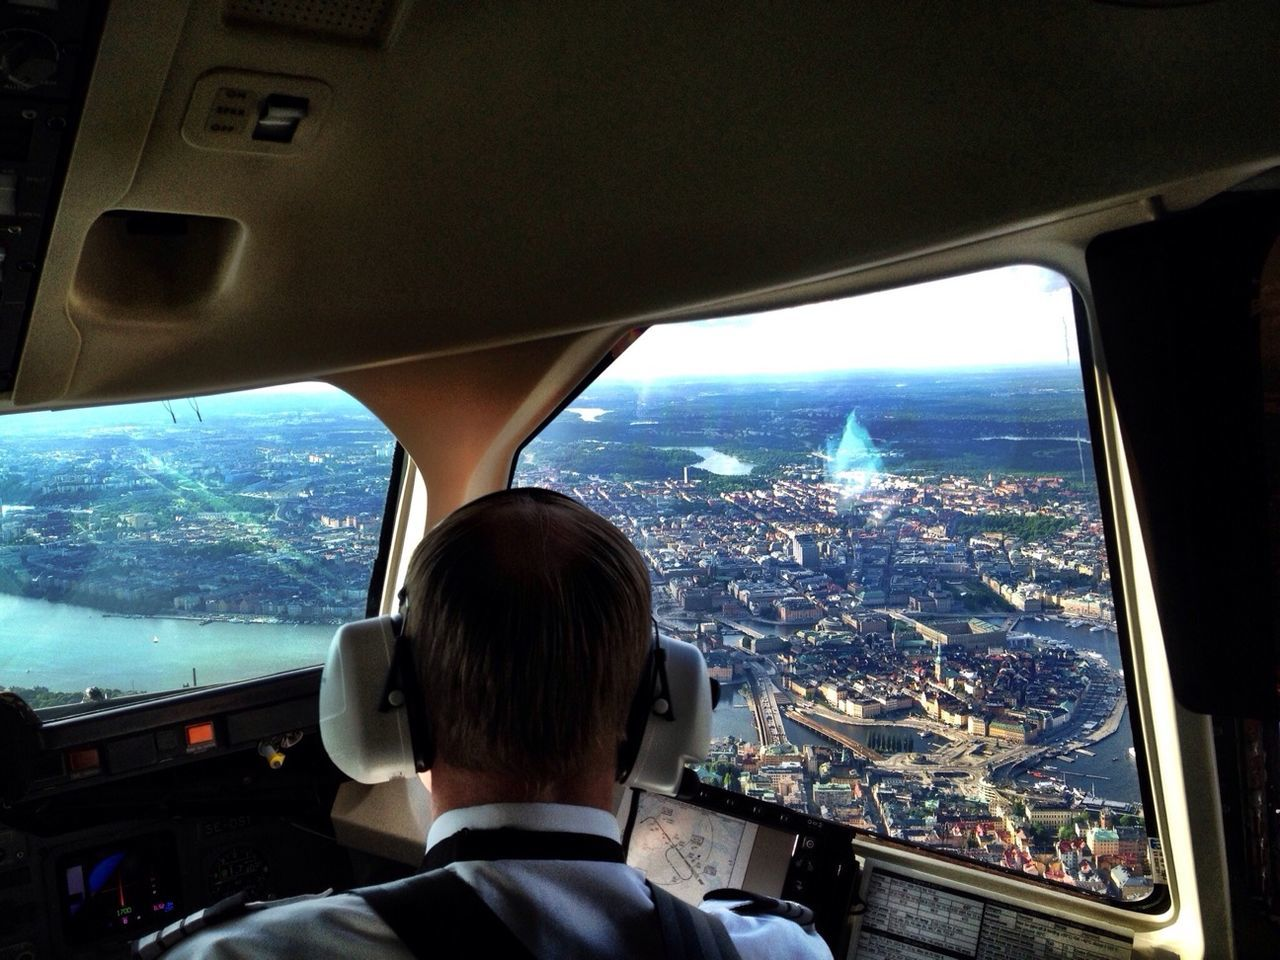 Rear view of pilot in airplane looking at city view through window